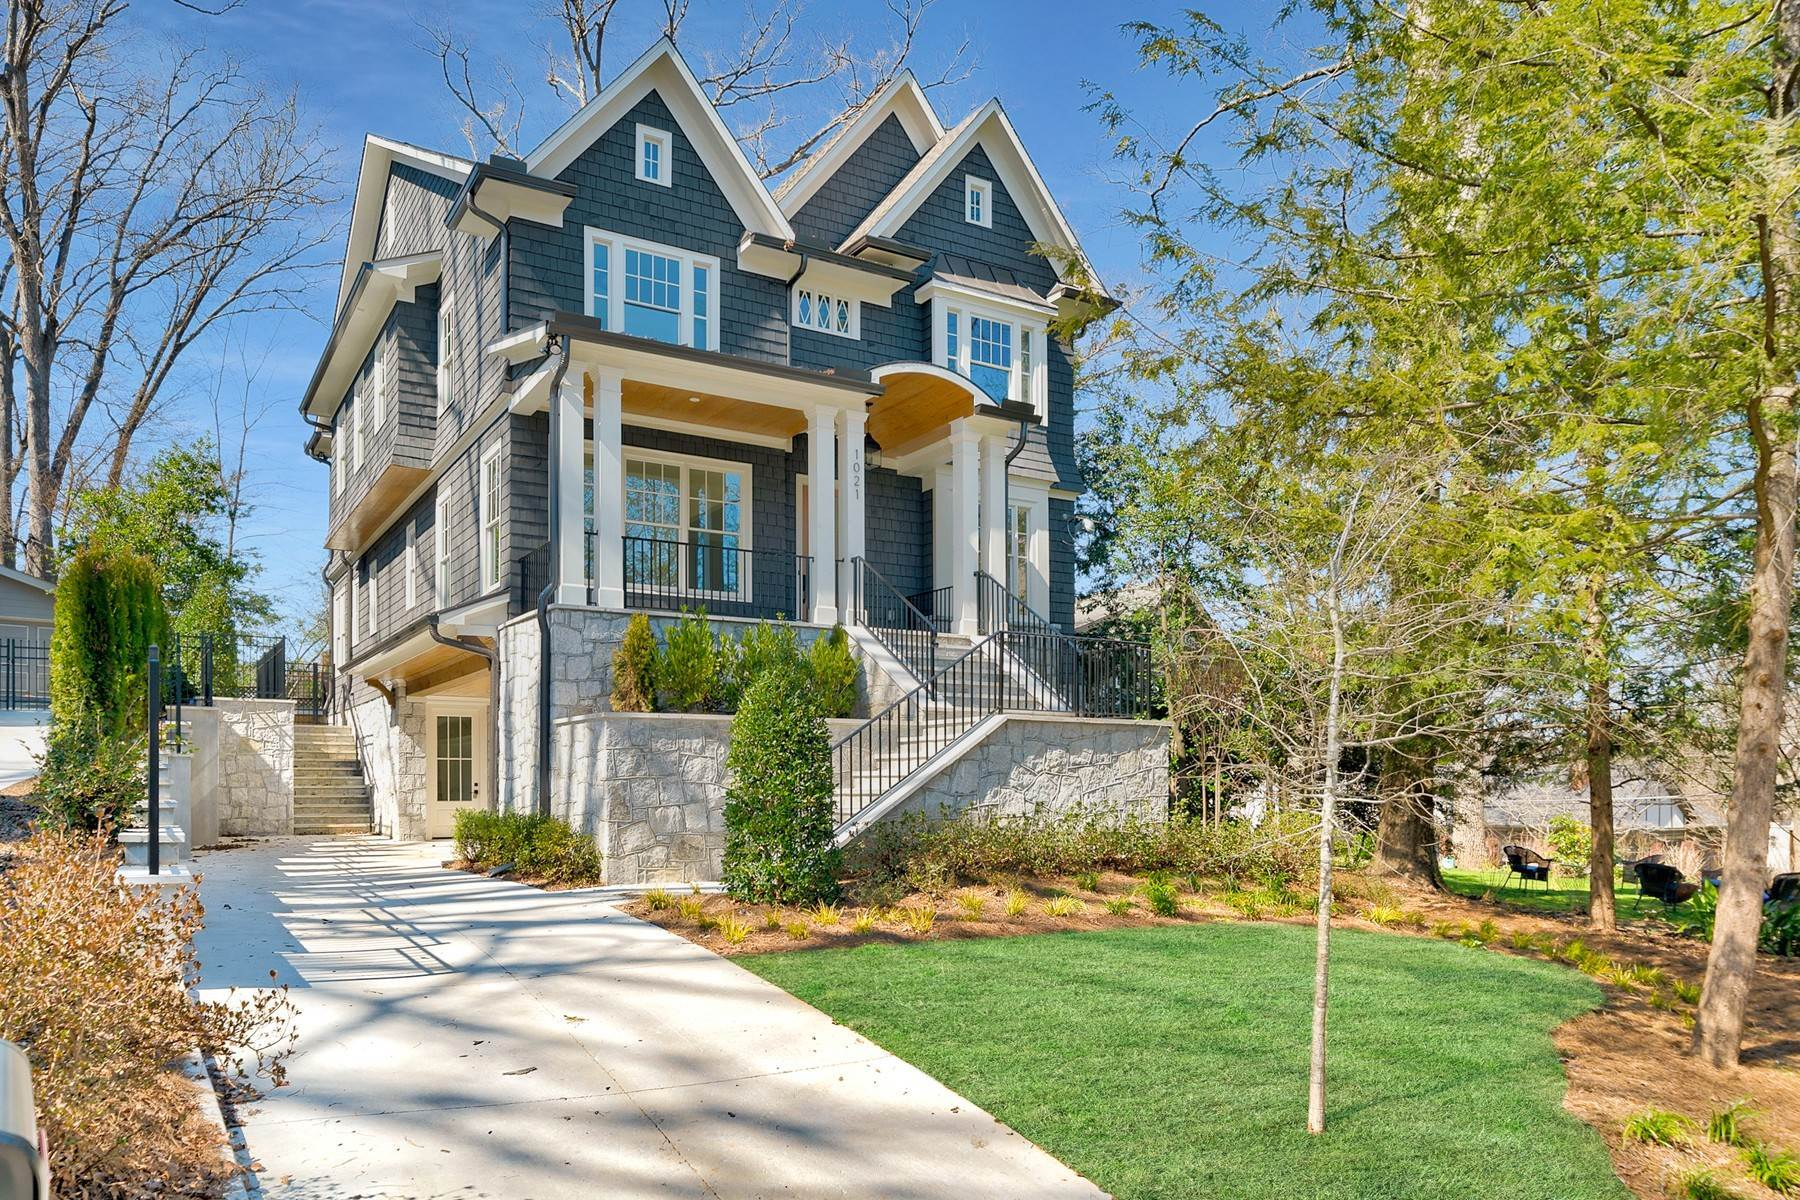 Single Family Homes for Sale at Custom-Built Home on One of Morningside's Most Desirable Streets 1021 Reeder Circle Atlanta, Georgia 30306 United States